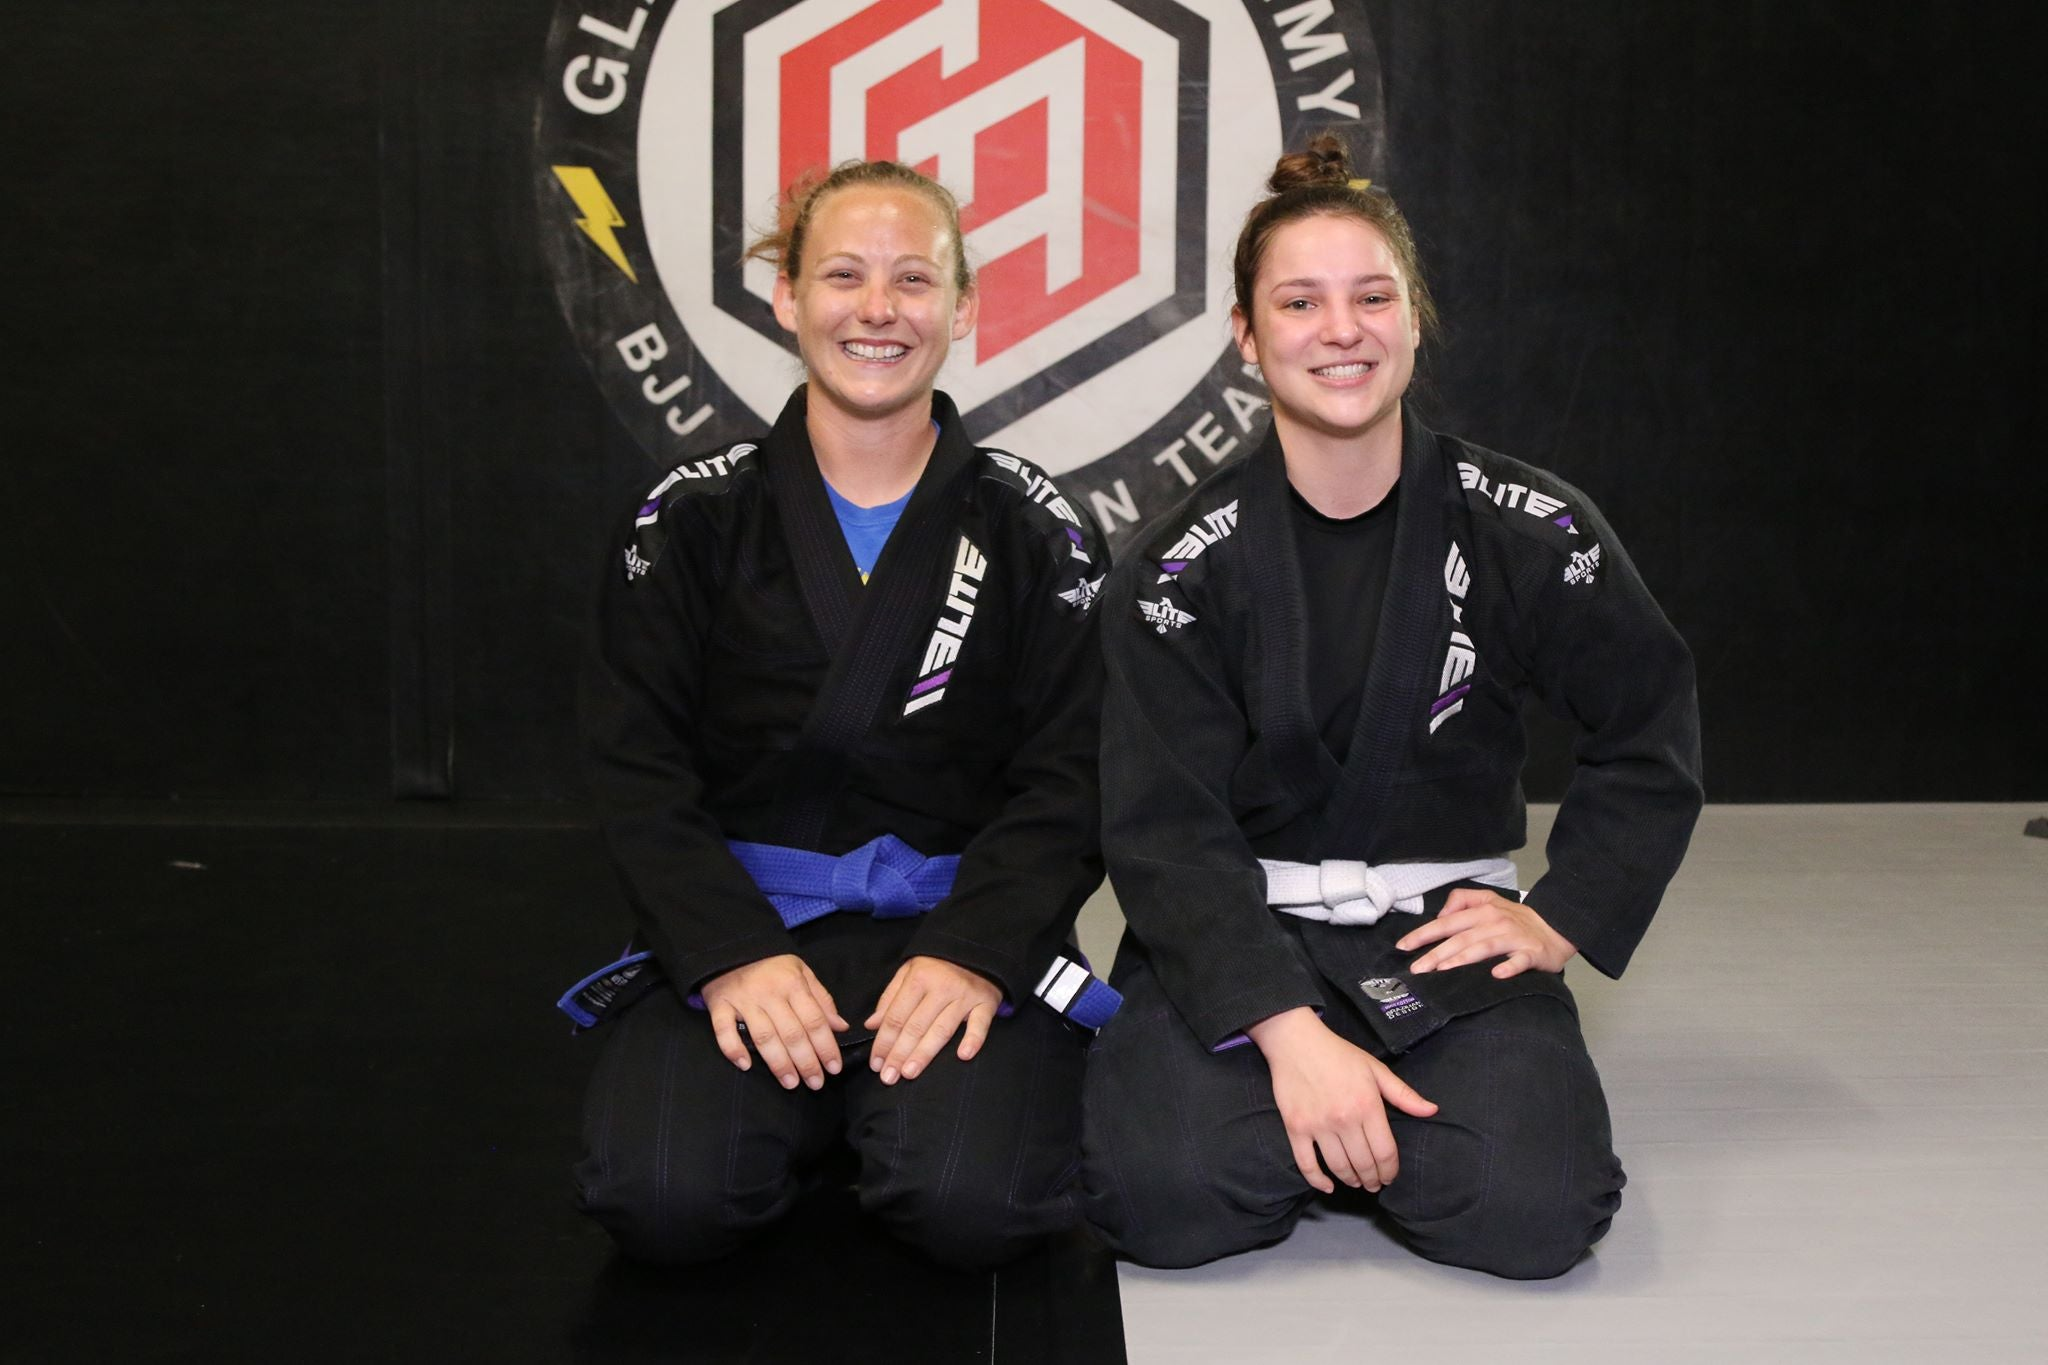 Elite Sports Team Elite Bjj Fighter Aimee Olds   Image2